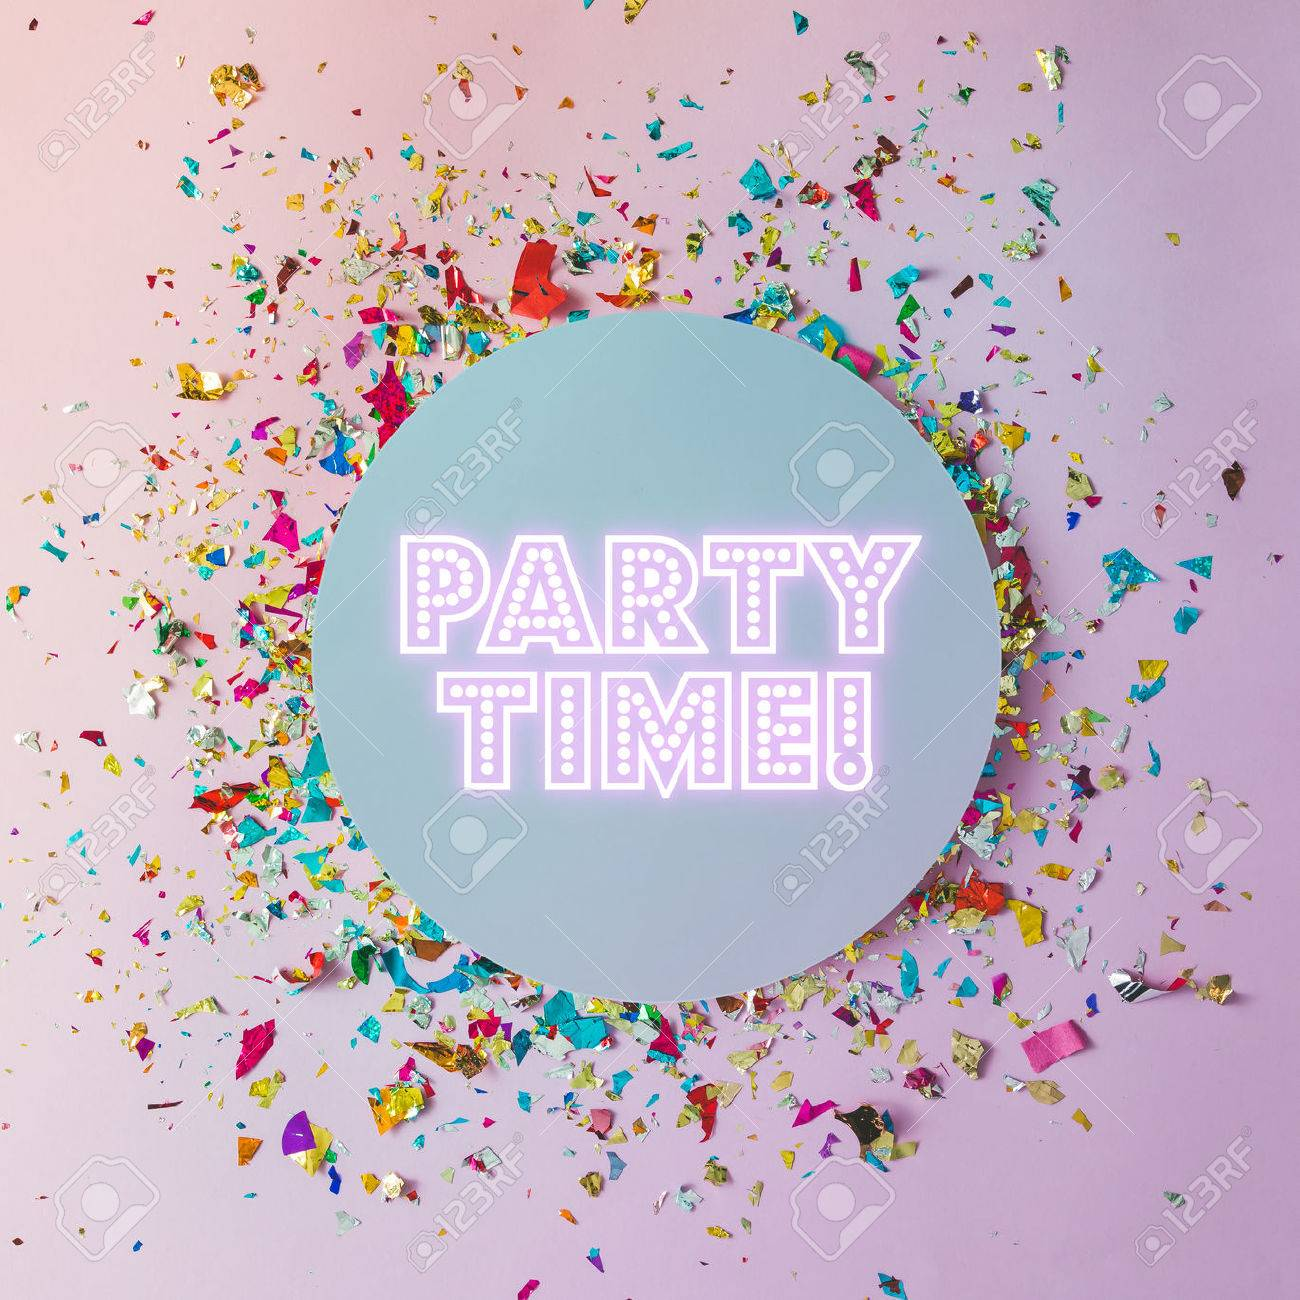 Colorful celebration background with party confetti on pink background. Flat lay. - 76696087